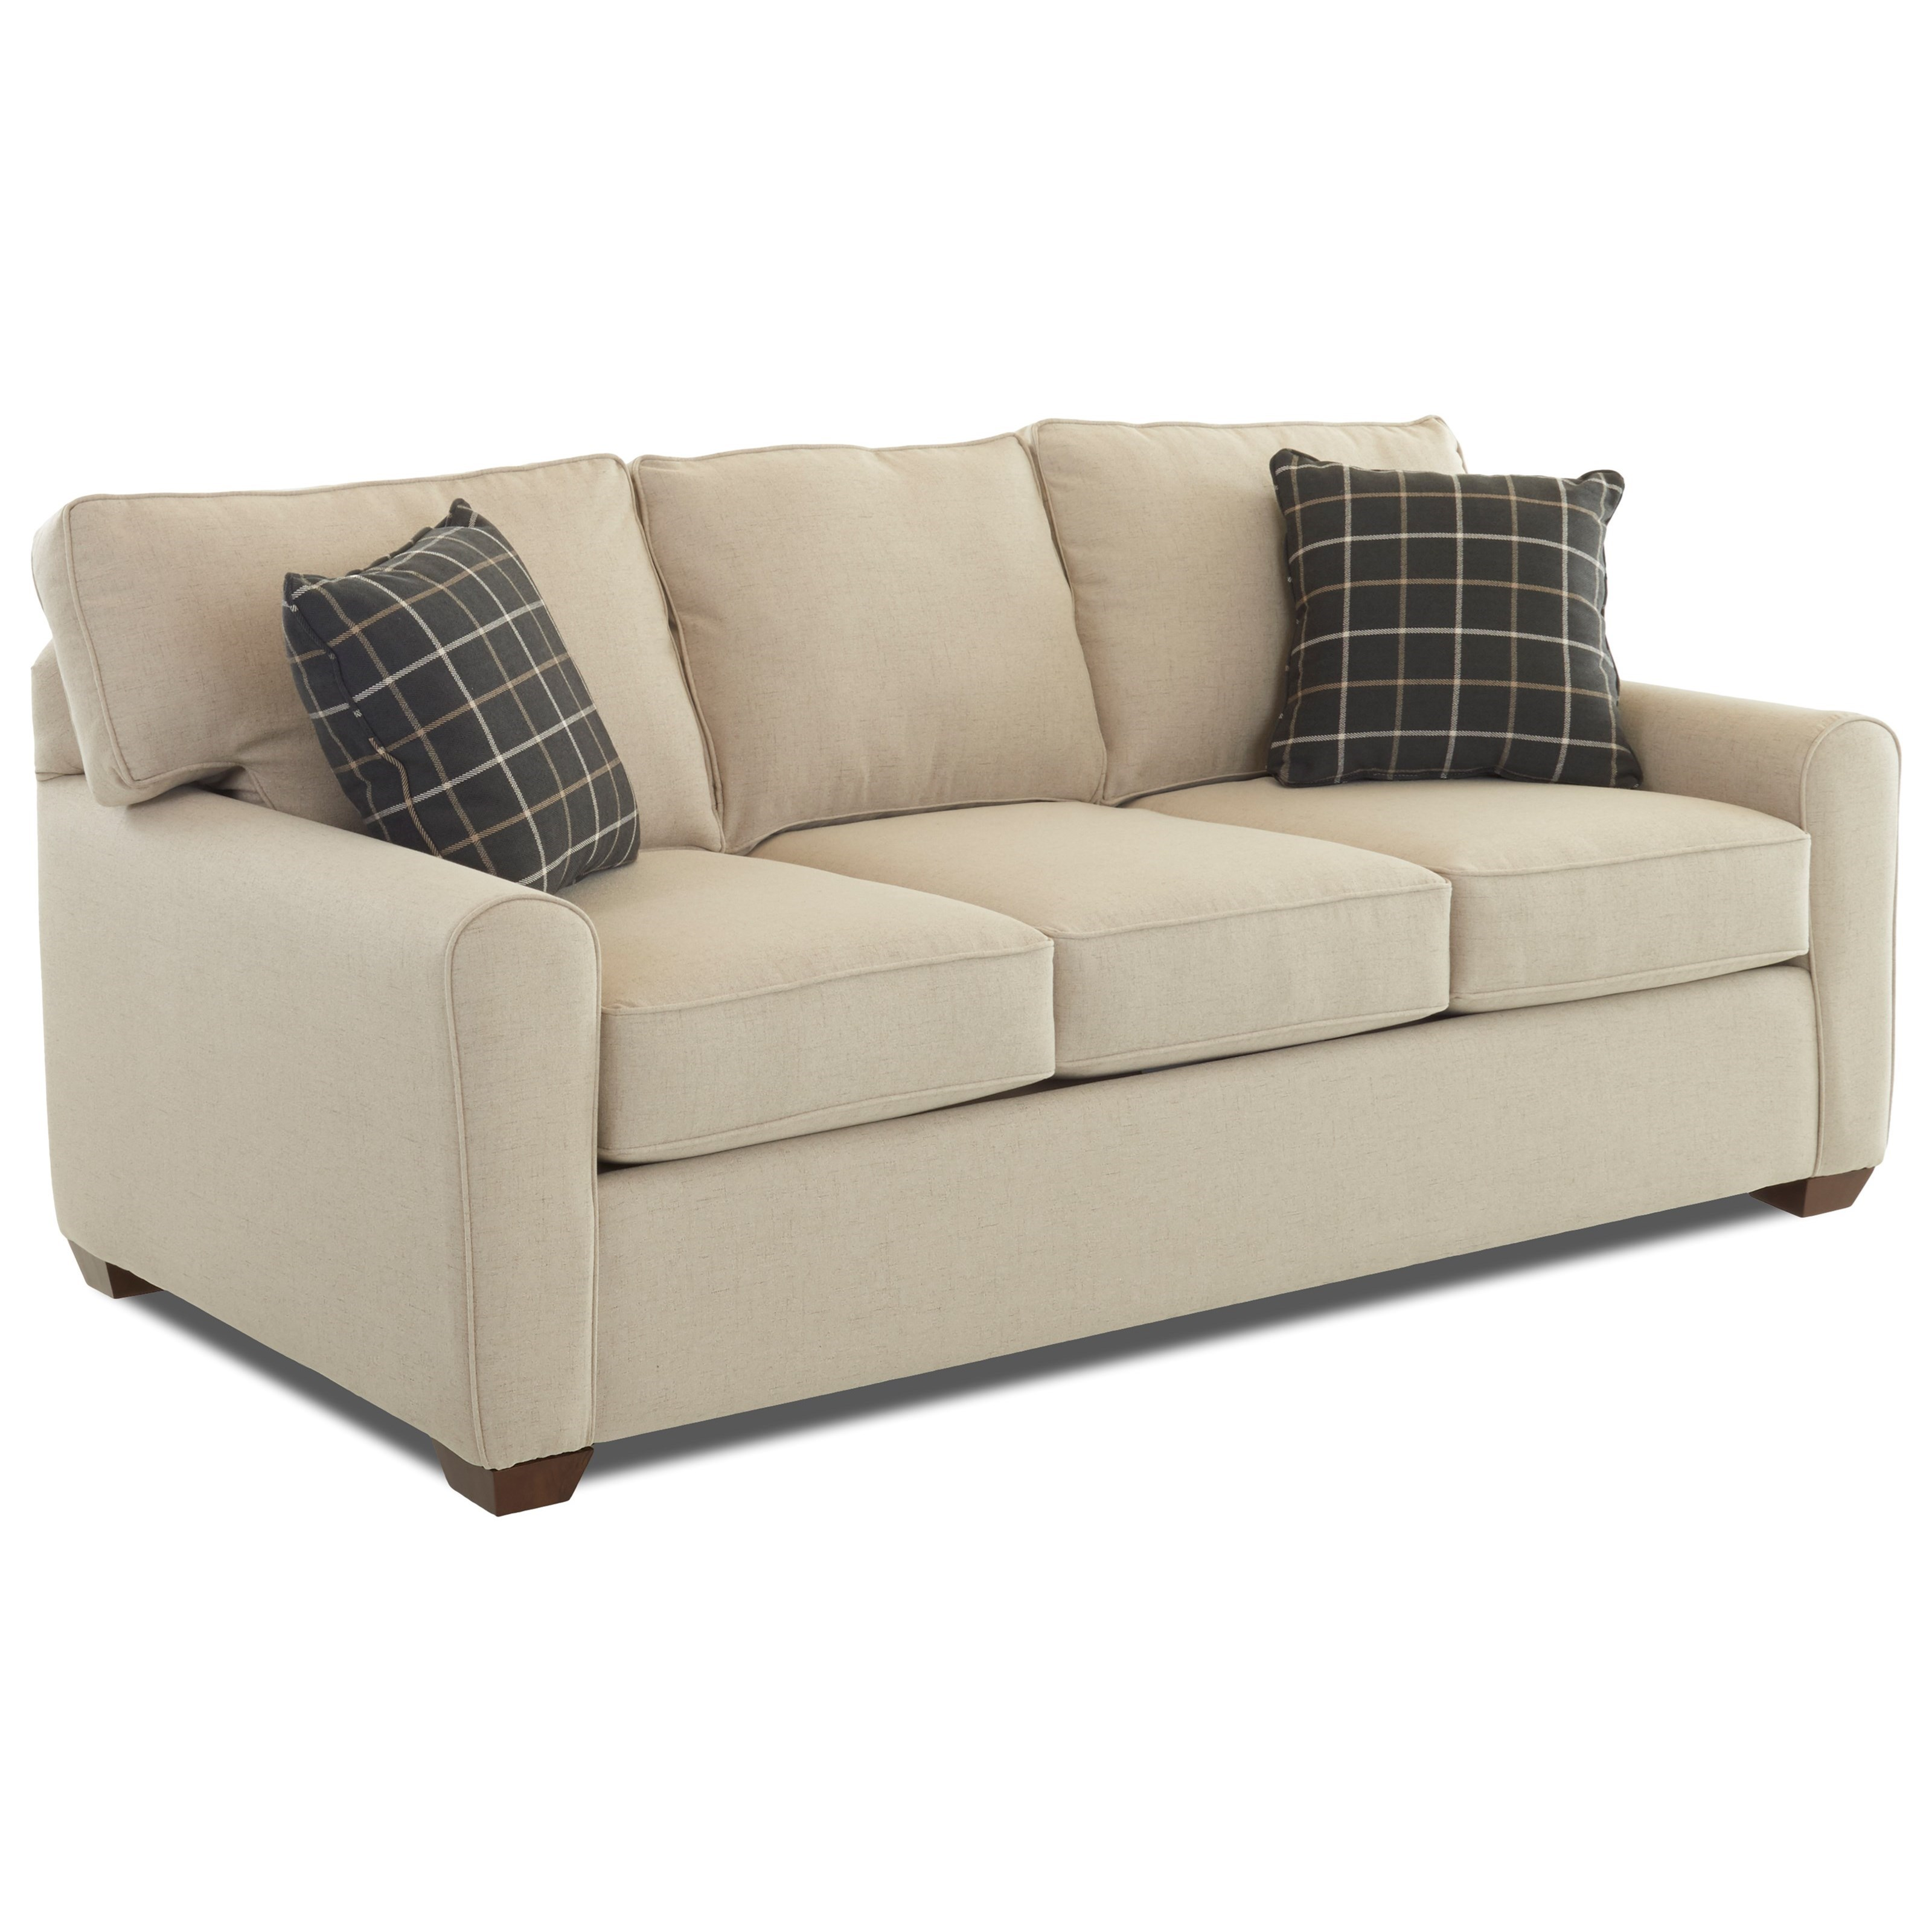 Casual stationary sofa with box seat cushions and welt for Sofawelt outlet